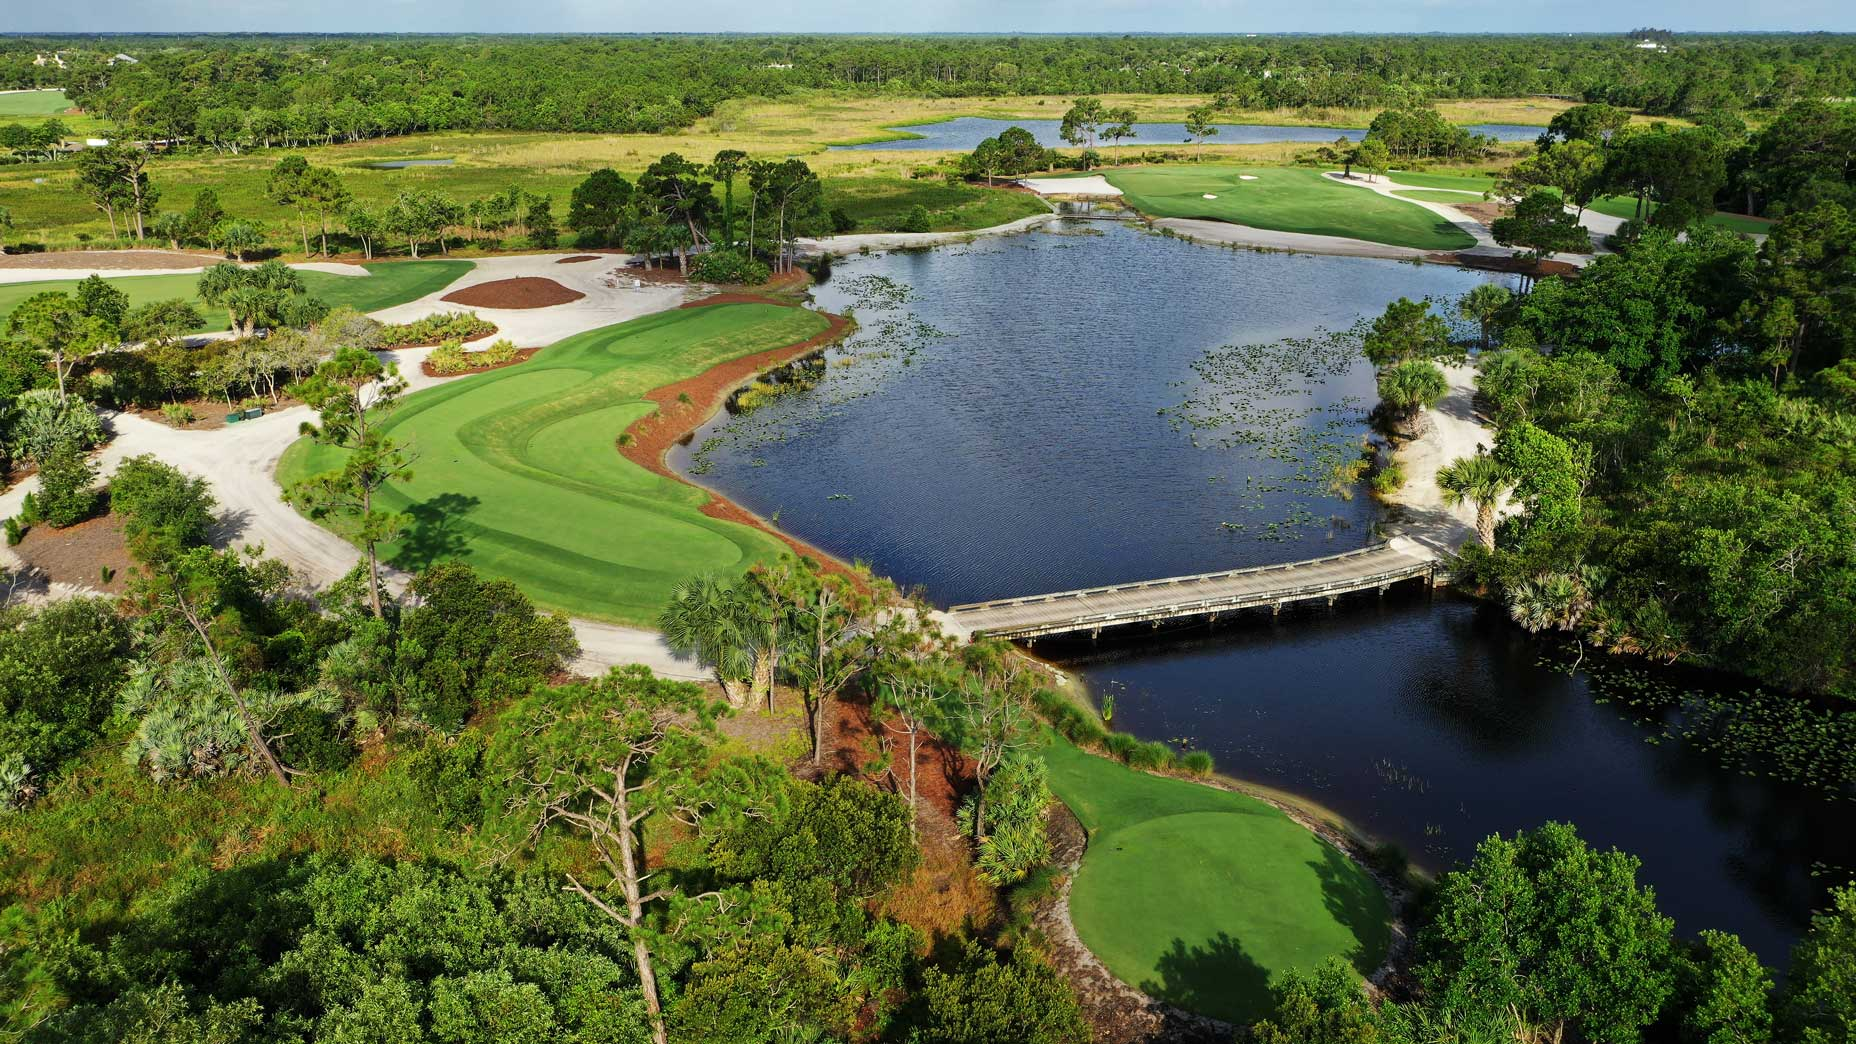 An aerial drone view of the 16th hole at Medalist Golf Club.